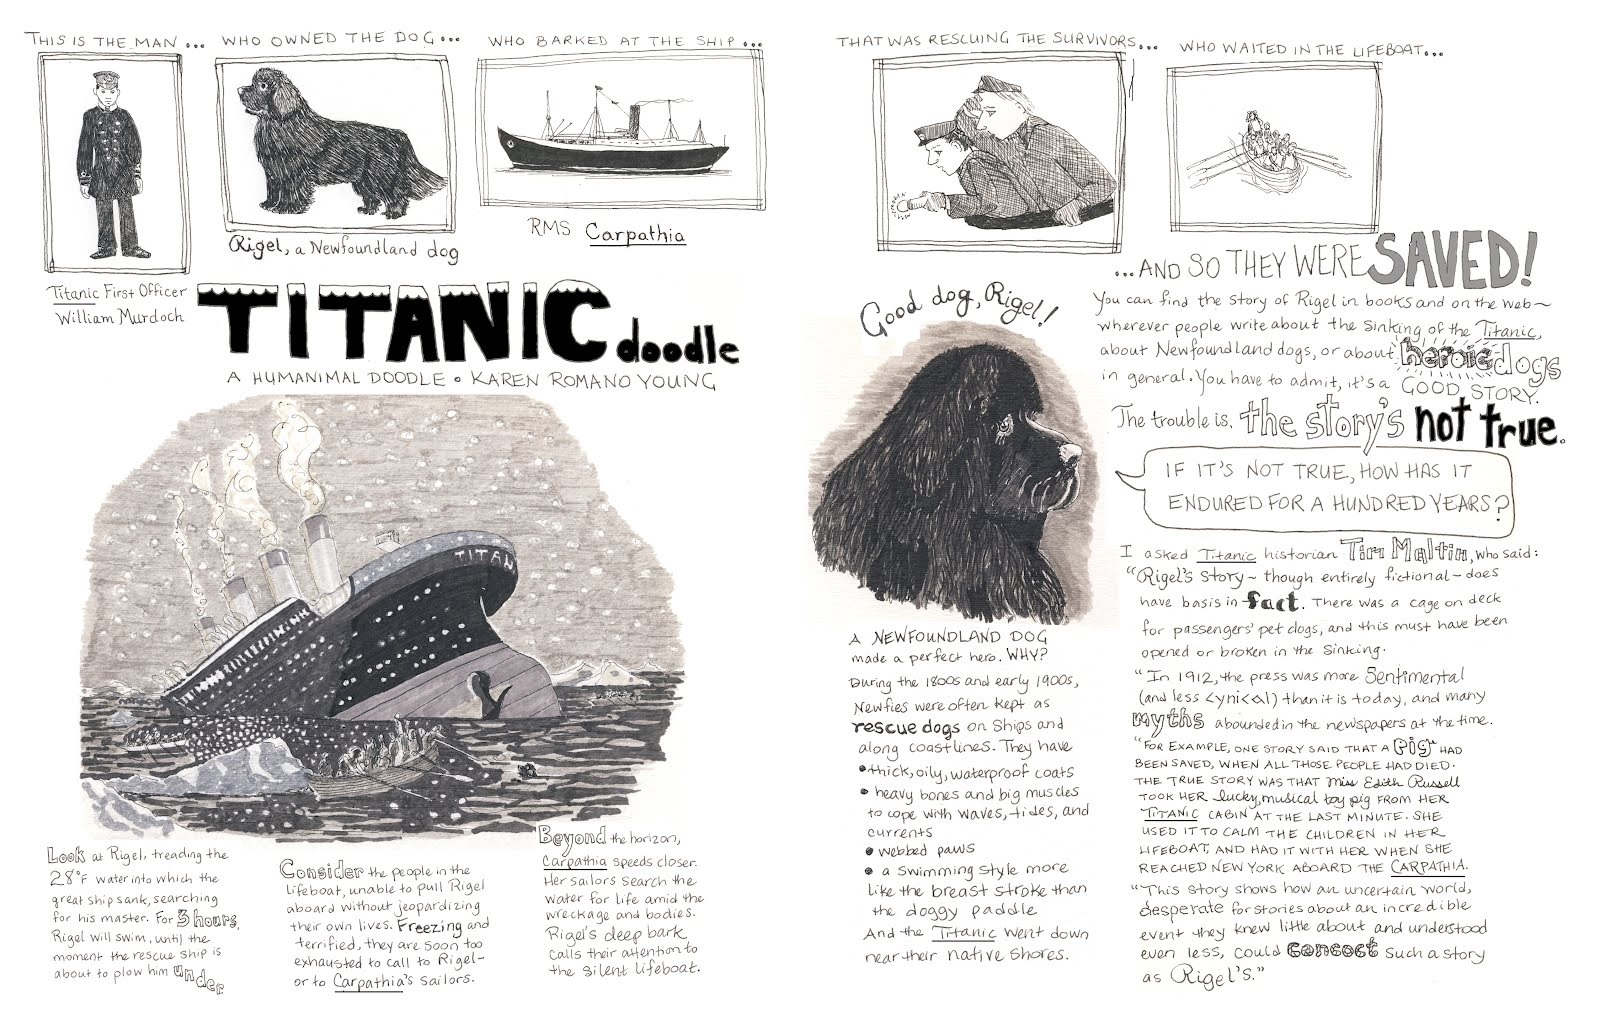 essay on titanic story Access to over 100,000 complete essays and term papers the story of the titanic began before anyone had even thought about building the great ship.